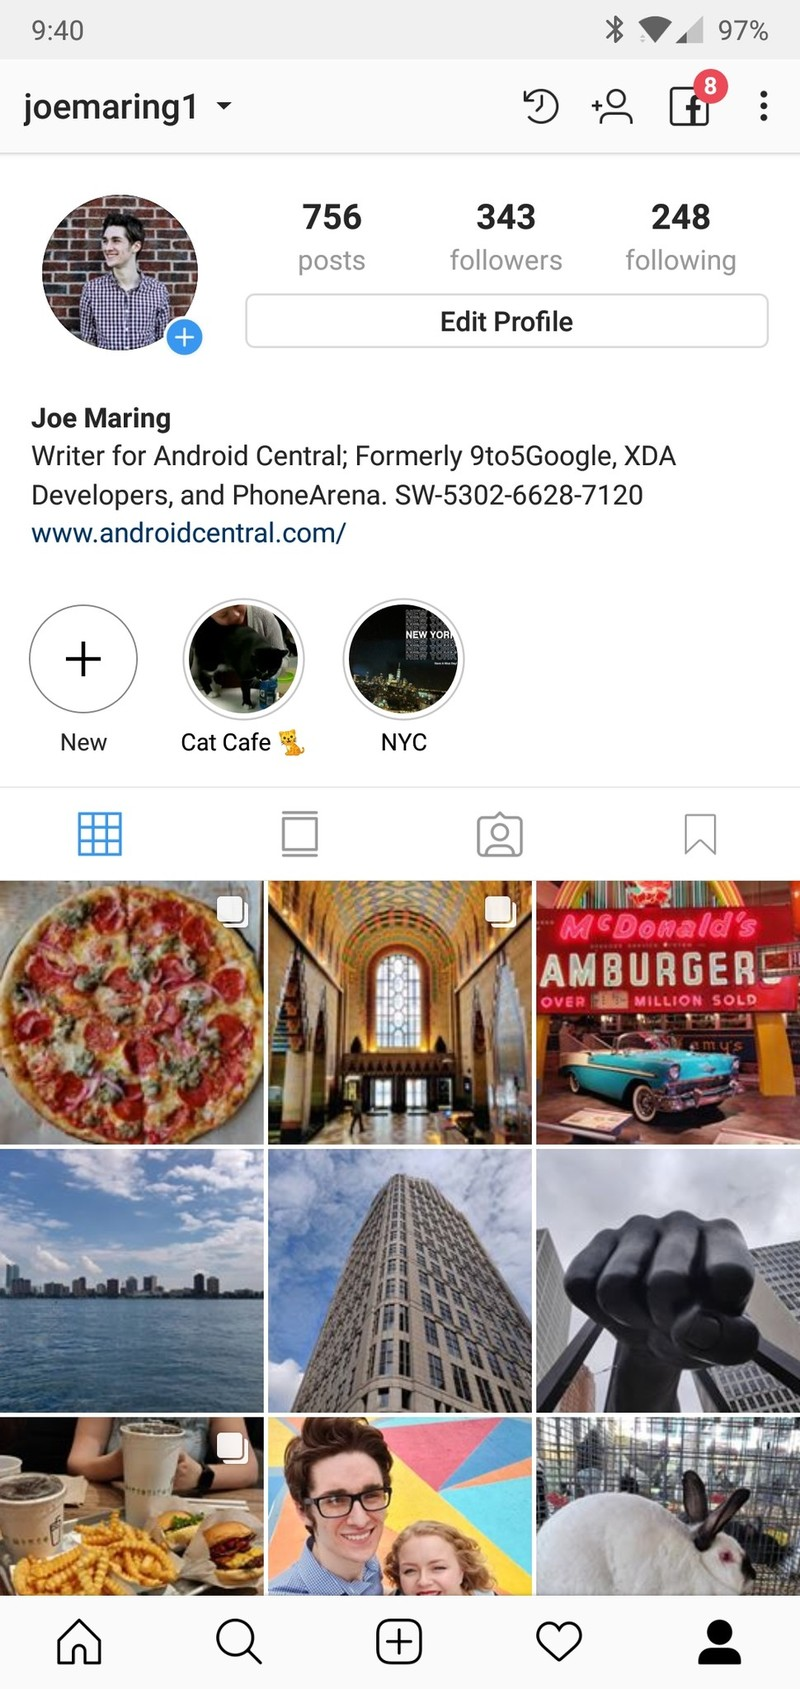 instagram-saved-how-to-3.jpg?itok=auGscG